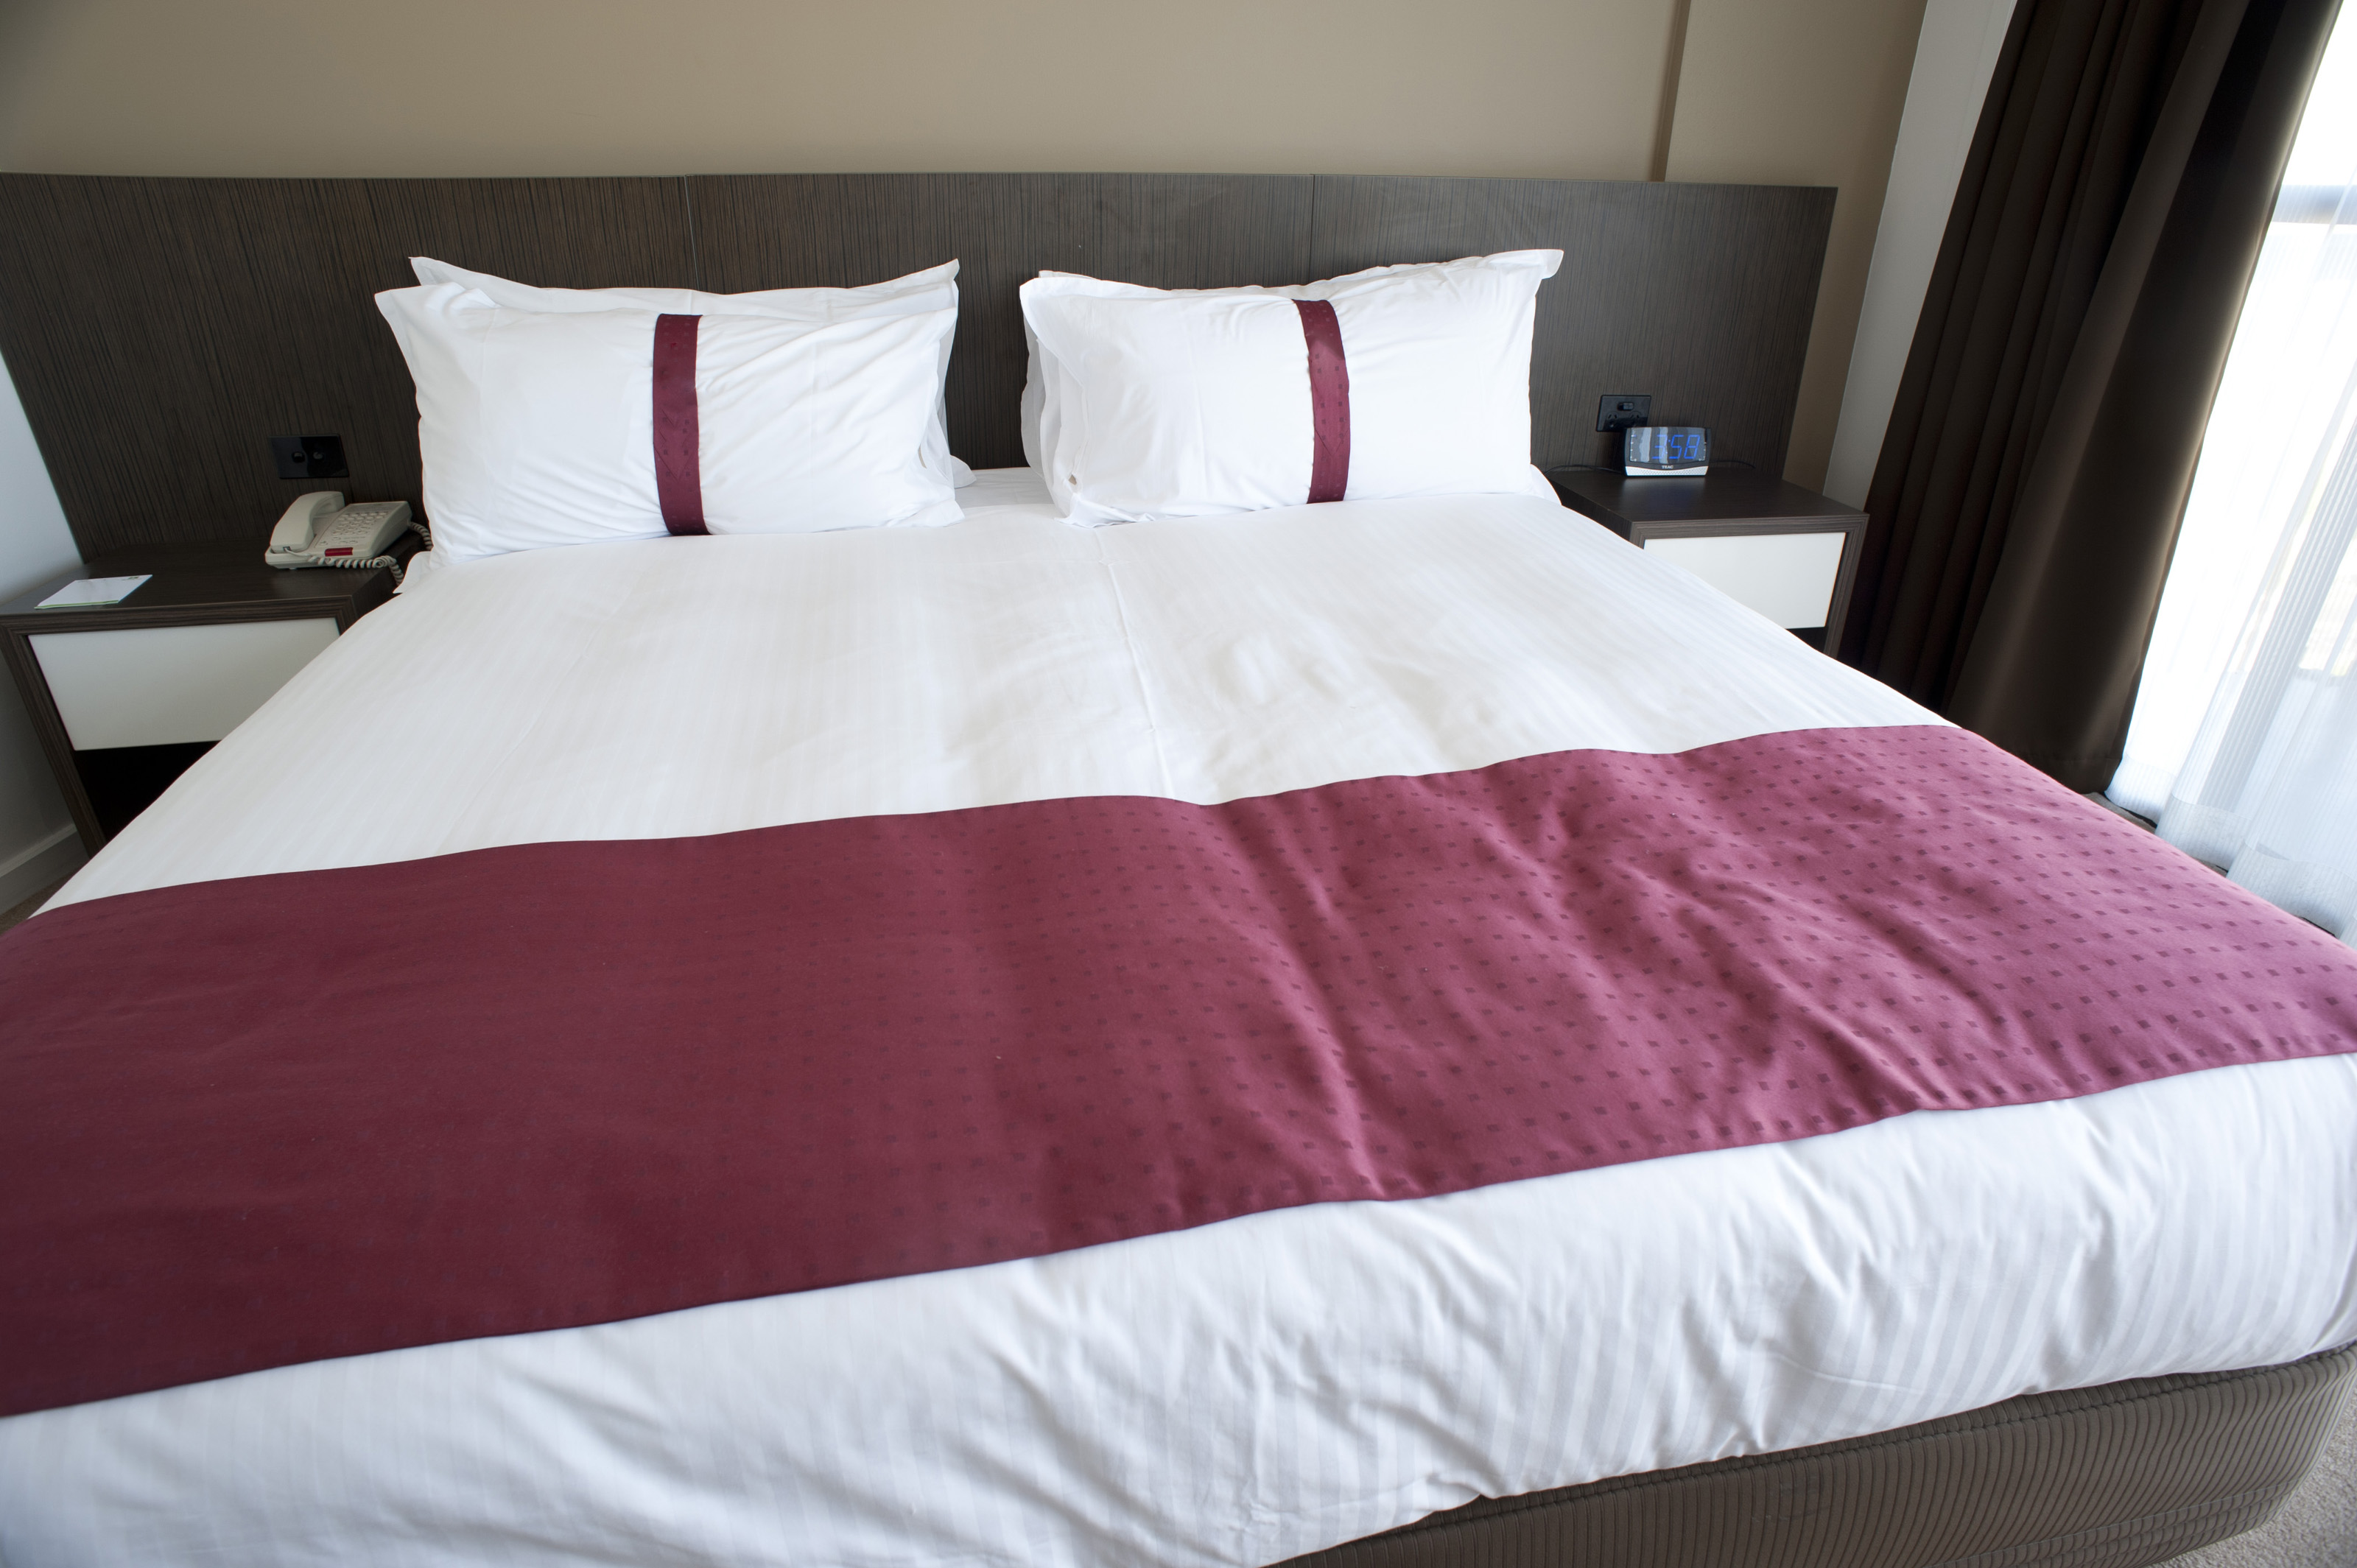 King Sized Bed And Bed Set